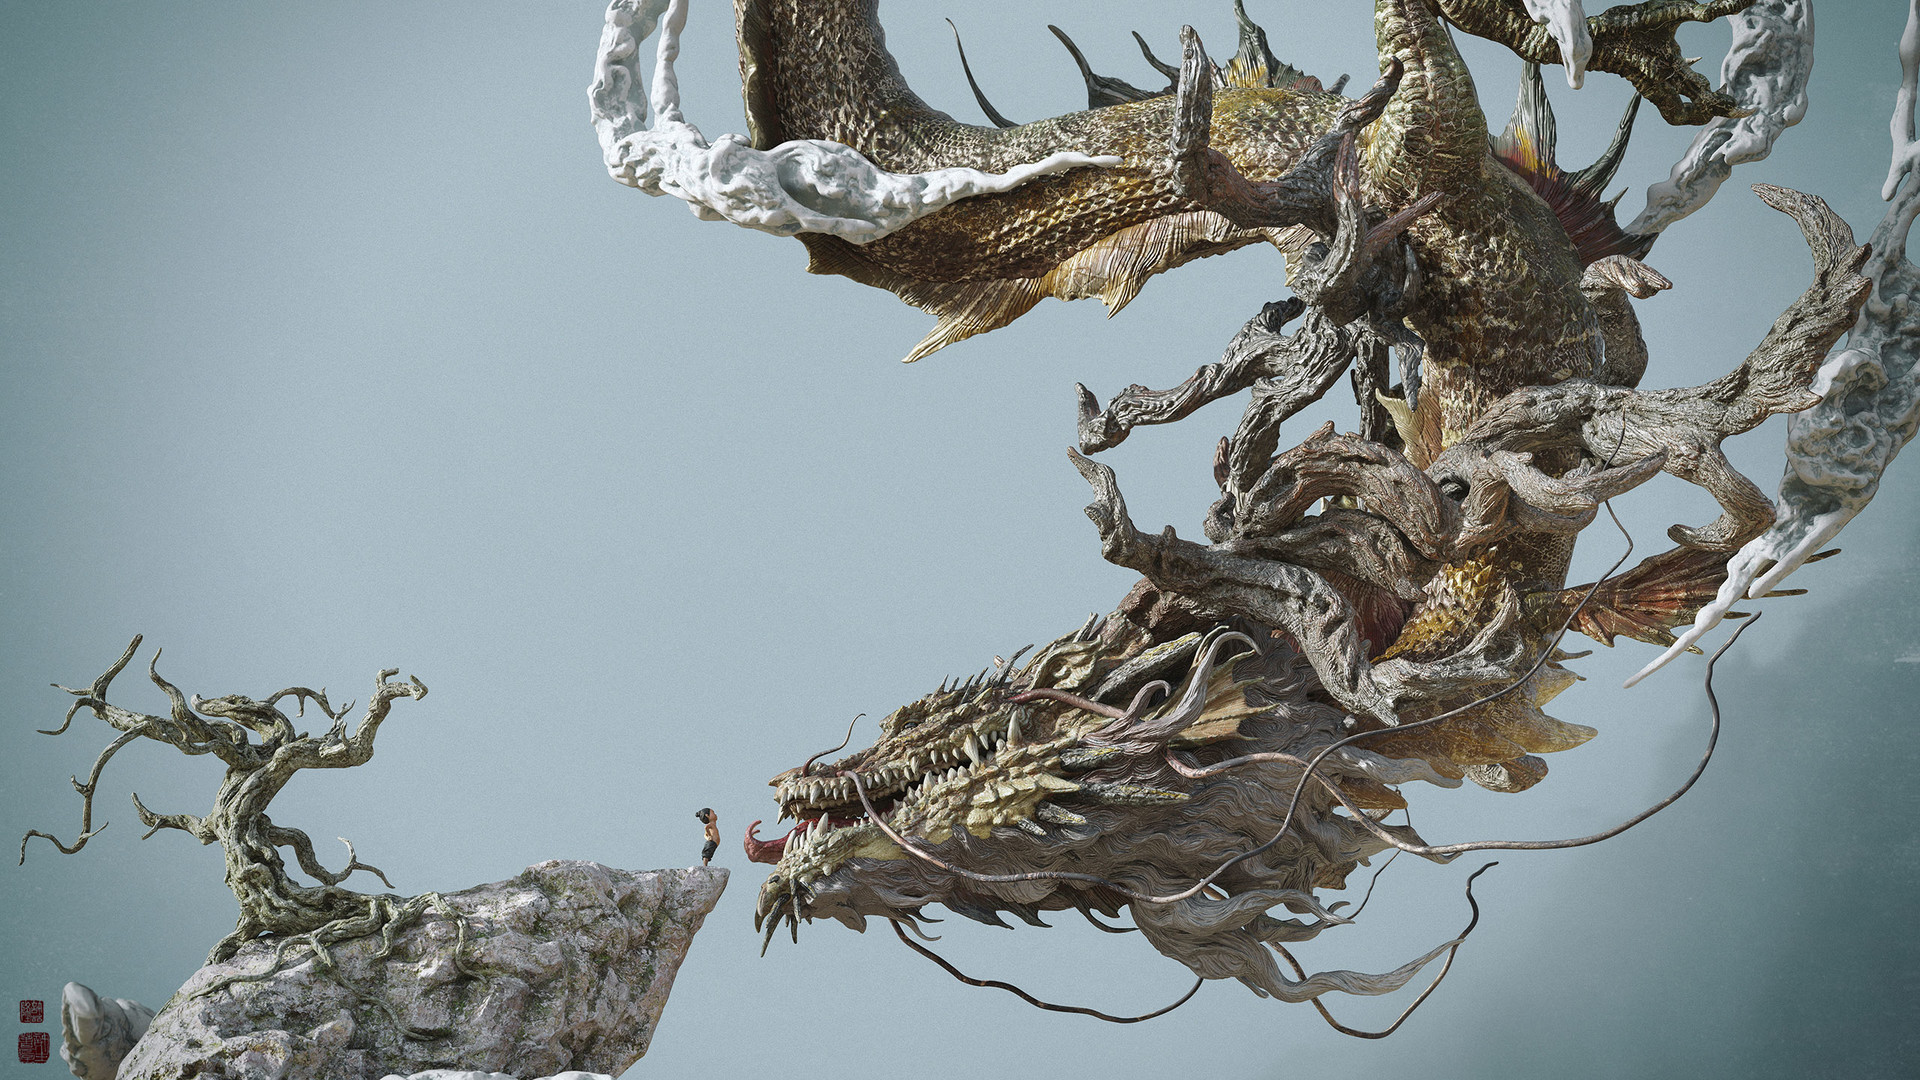 Zhelong xu boy face to the dragon web03